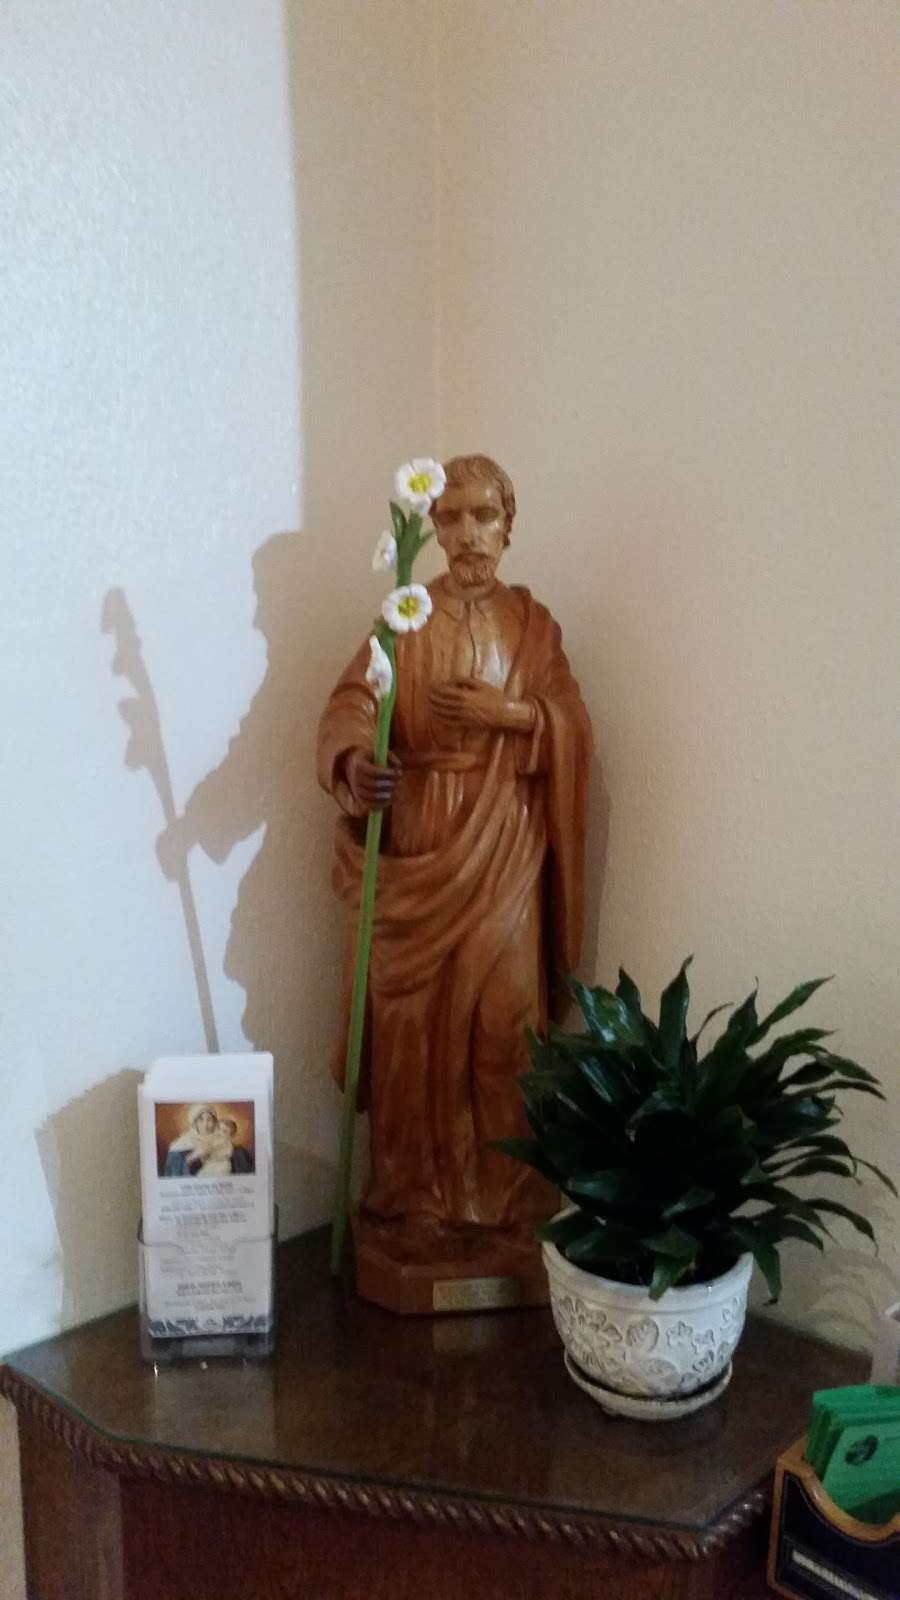 Our Lady Of Schoenstatt Shrine - church  | Photo 10 of 10 | Address: 17071 Low Rd, Helotes, TX 78023, USA | Phone: (210) 695-1400